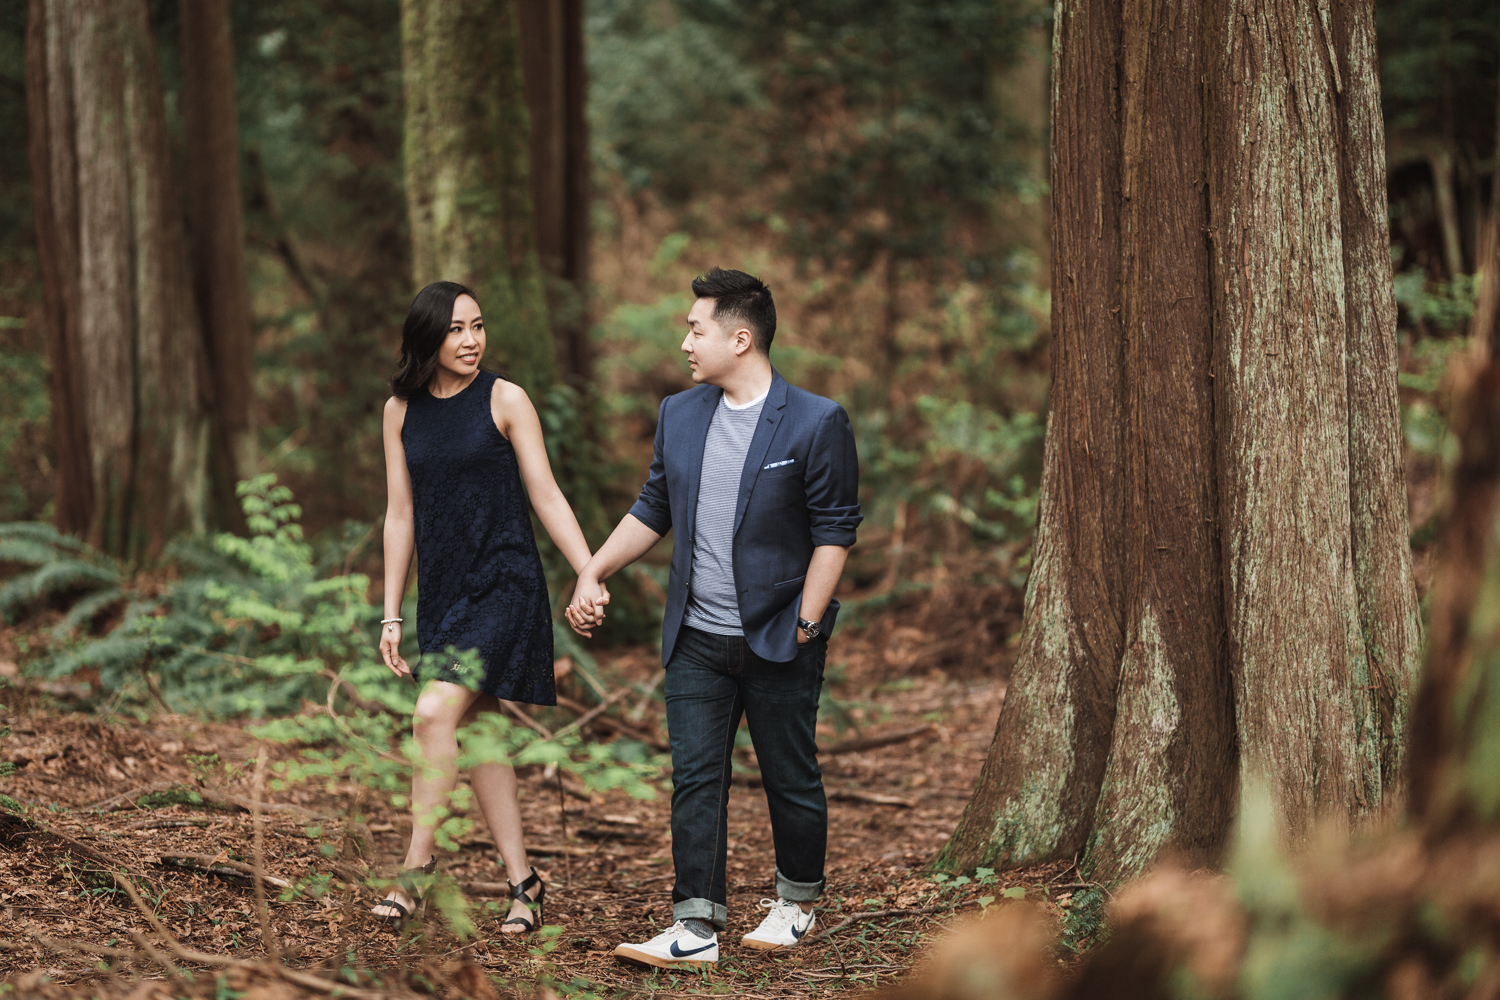 vancouver engagement photographer in stanley park during spring cherry blossom season